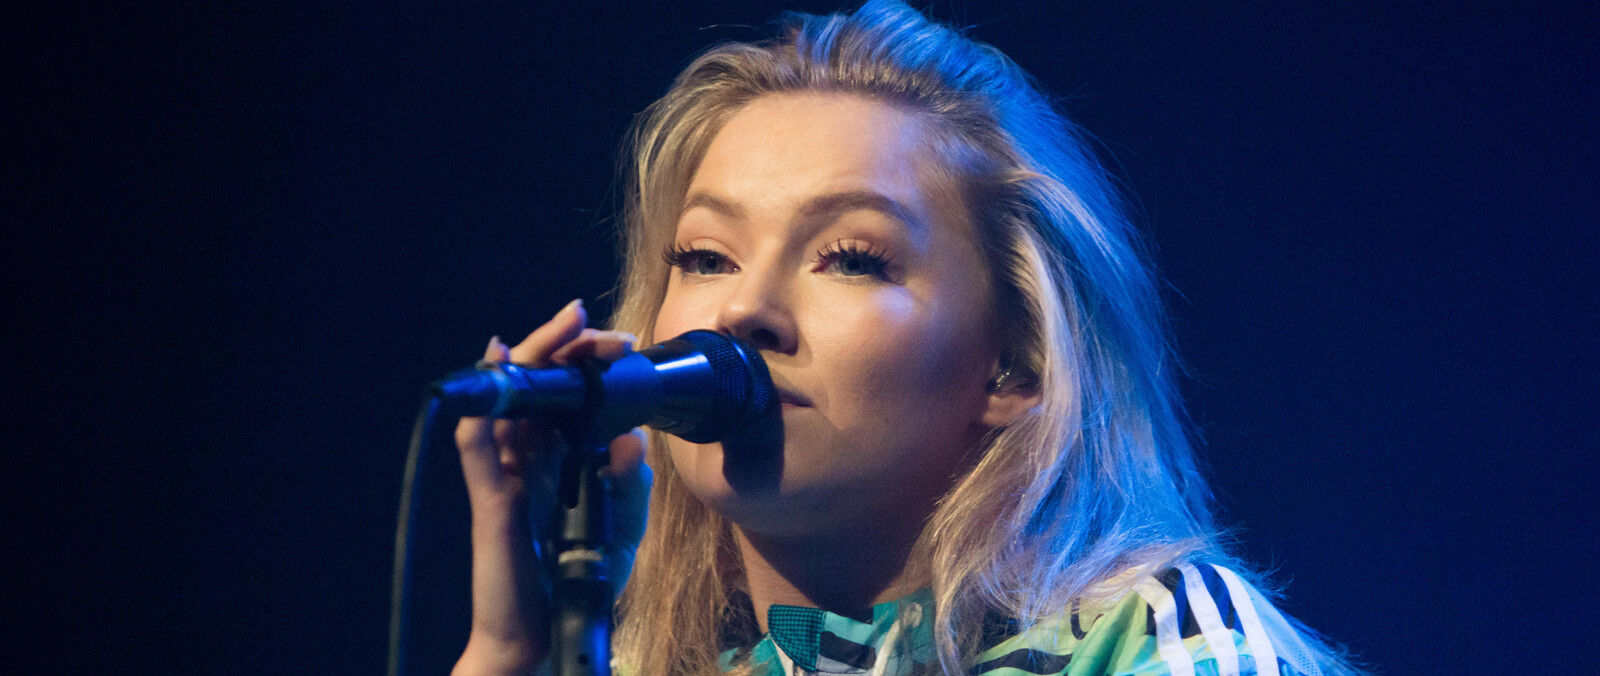 Astrid S Tickets (16+ Event)